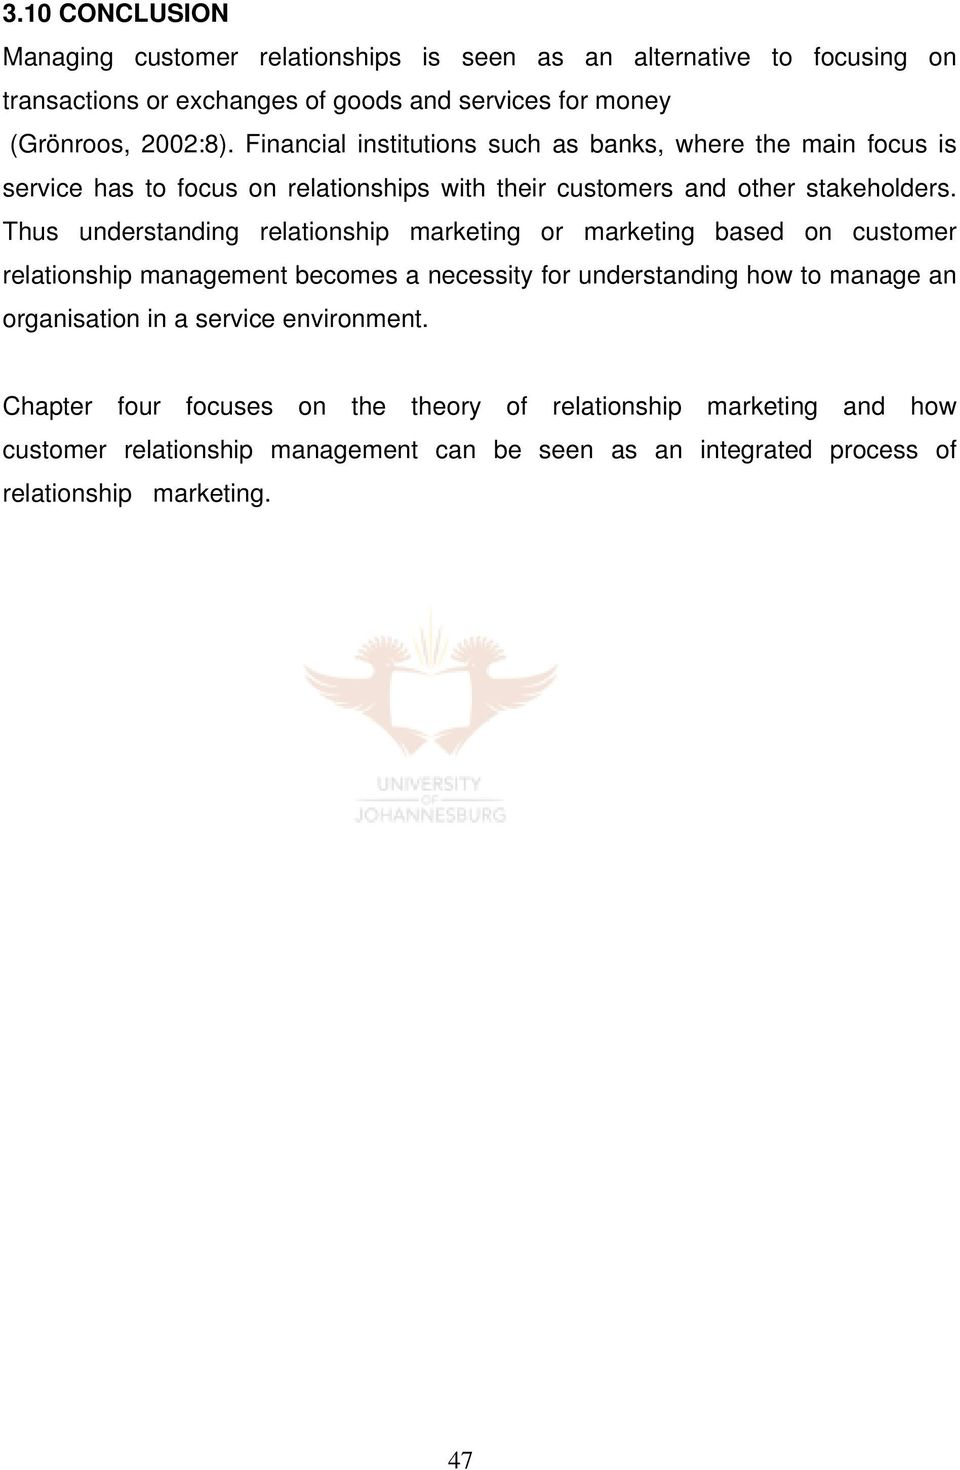 Thus understanding relationship marketing or marketing based on customer relationship management becomes a necessity for understanding how to manage an organisation in